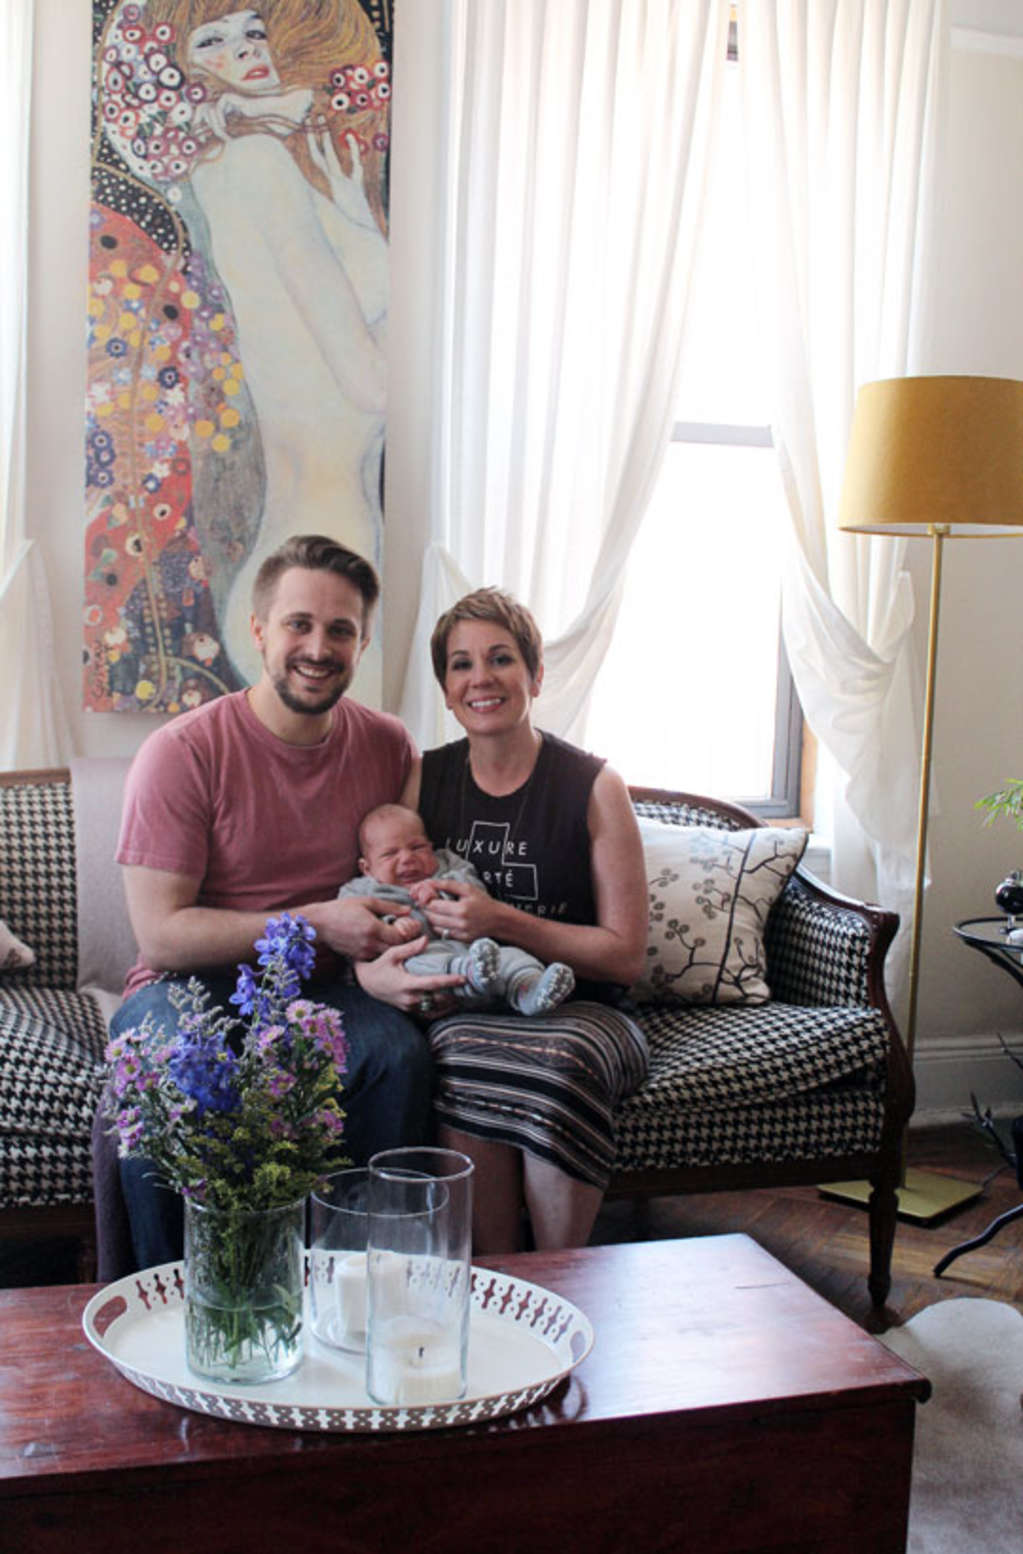 Aimee, Rene and Max's Sweet and Sophisticated Family Home